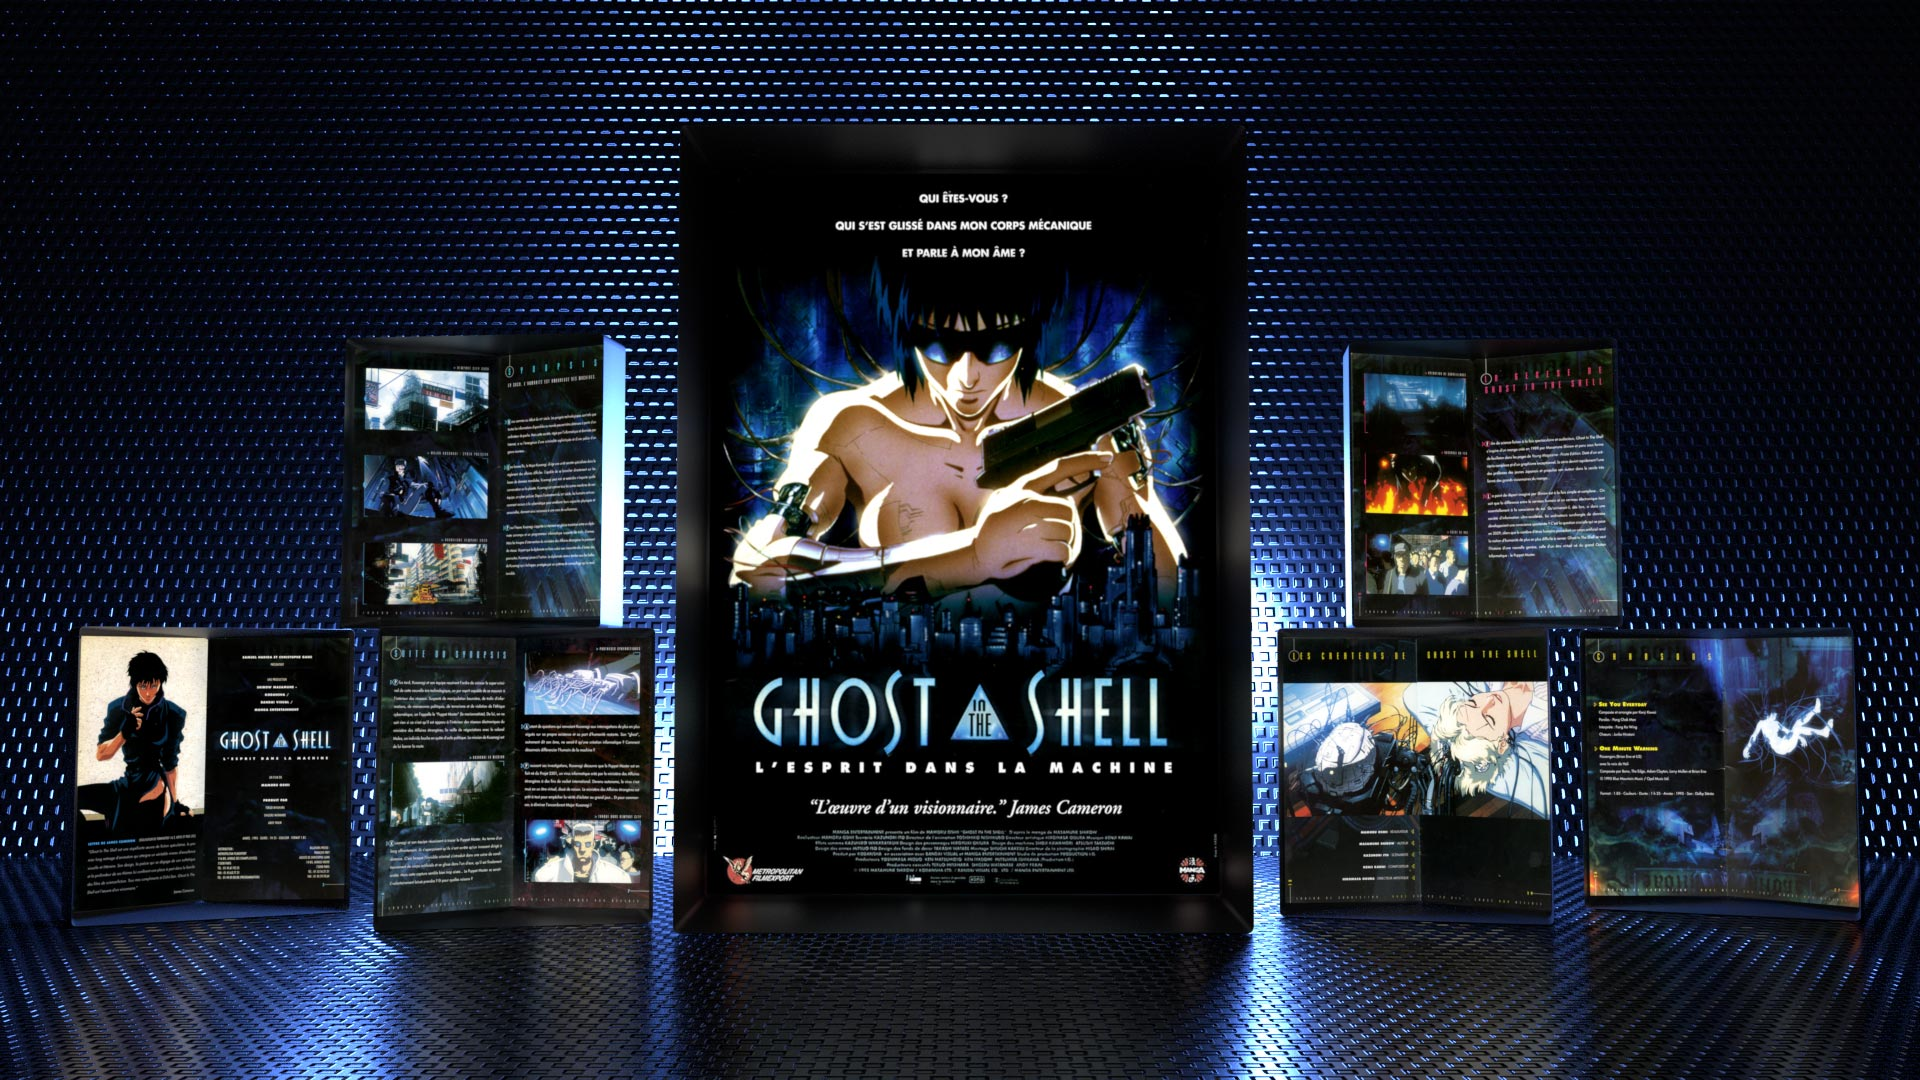 Adaptation of Ghost In The Shell original japanese materials for european marketing of the movie: poster, promotional booklet.